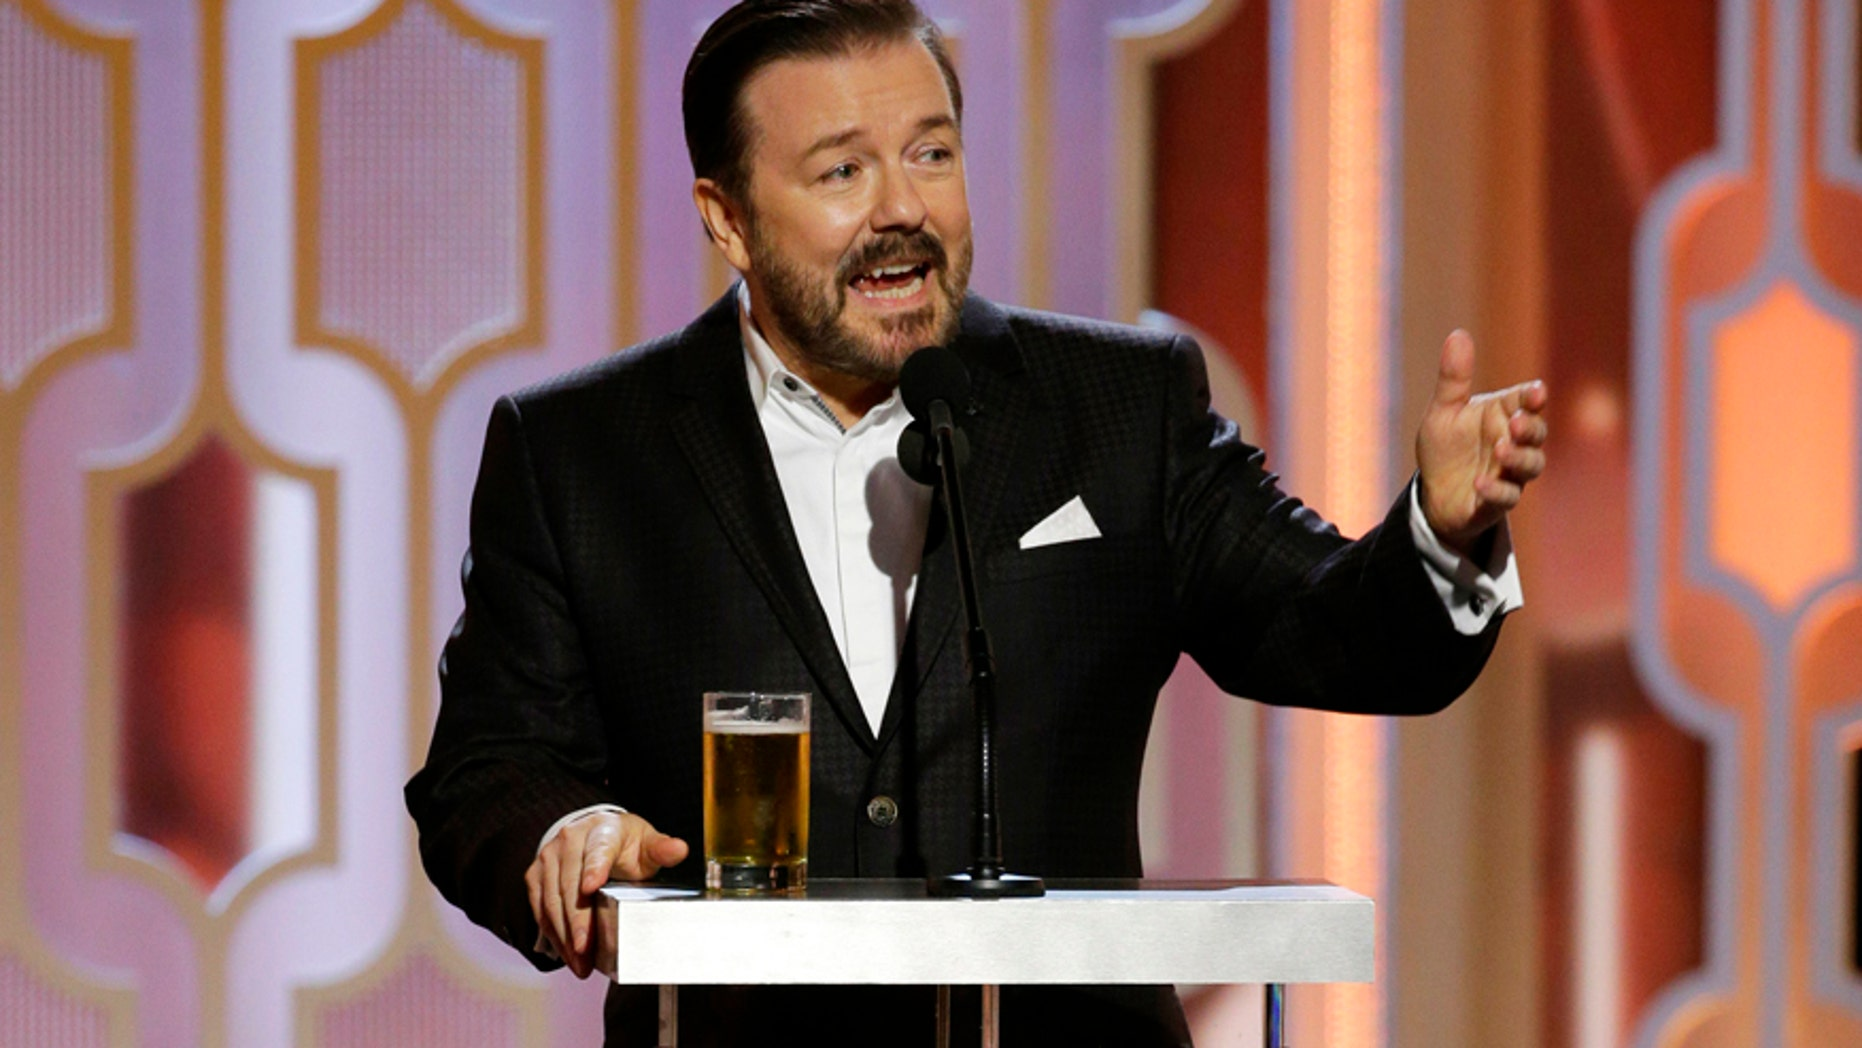 In this image released by NBC, host Ricky Gervais appears at the 73rd Annual Golden Globe Awards at the Beverly Hilton Hotel in Beverly Hills, Calif., on Sunday, Jan. 10, 2016.